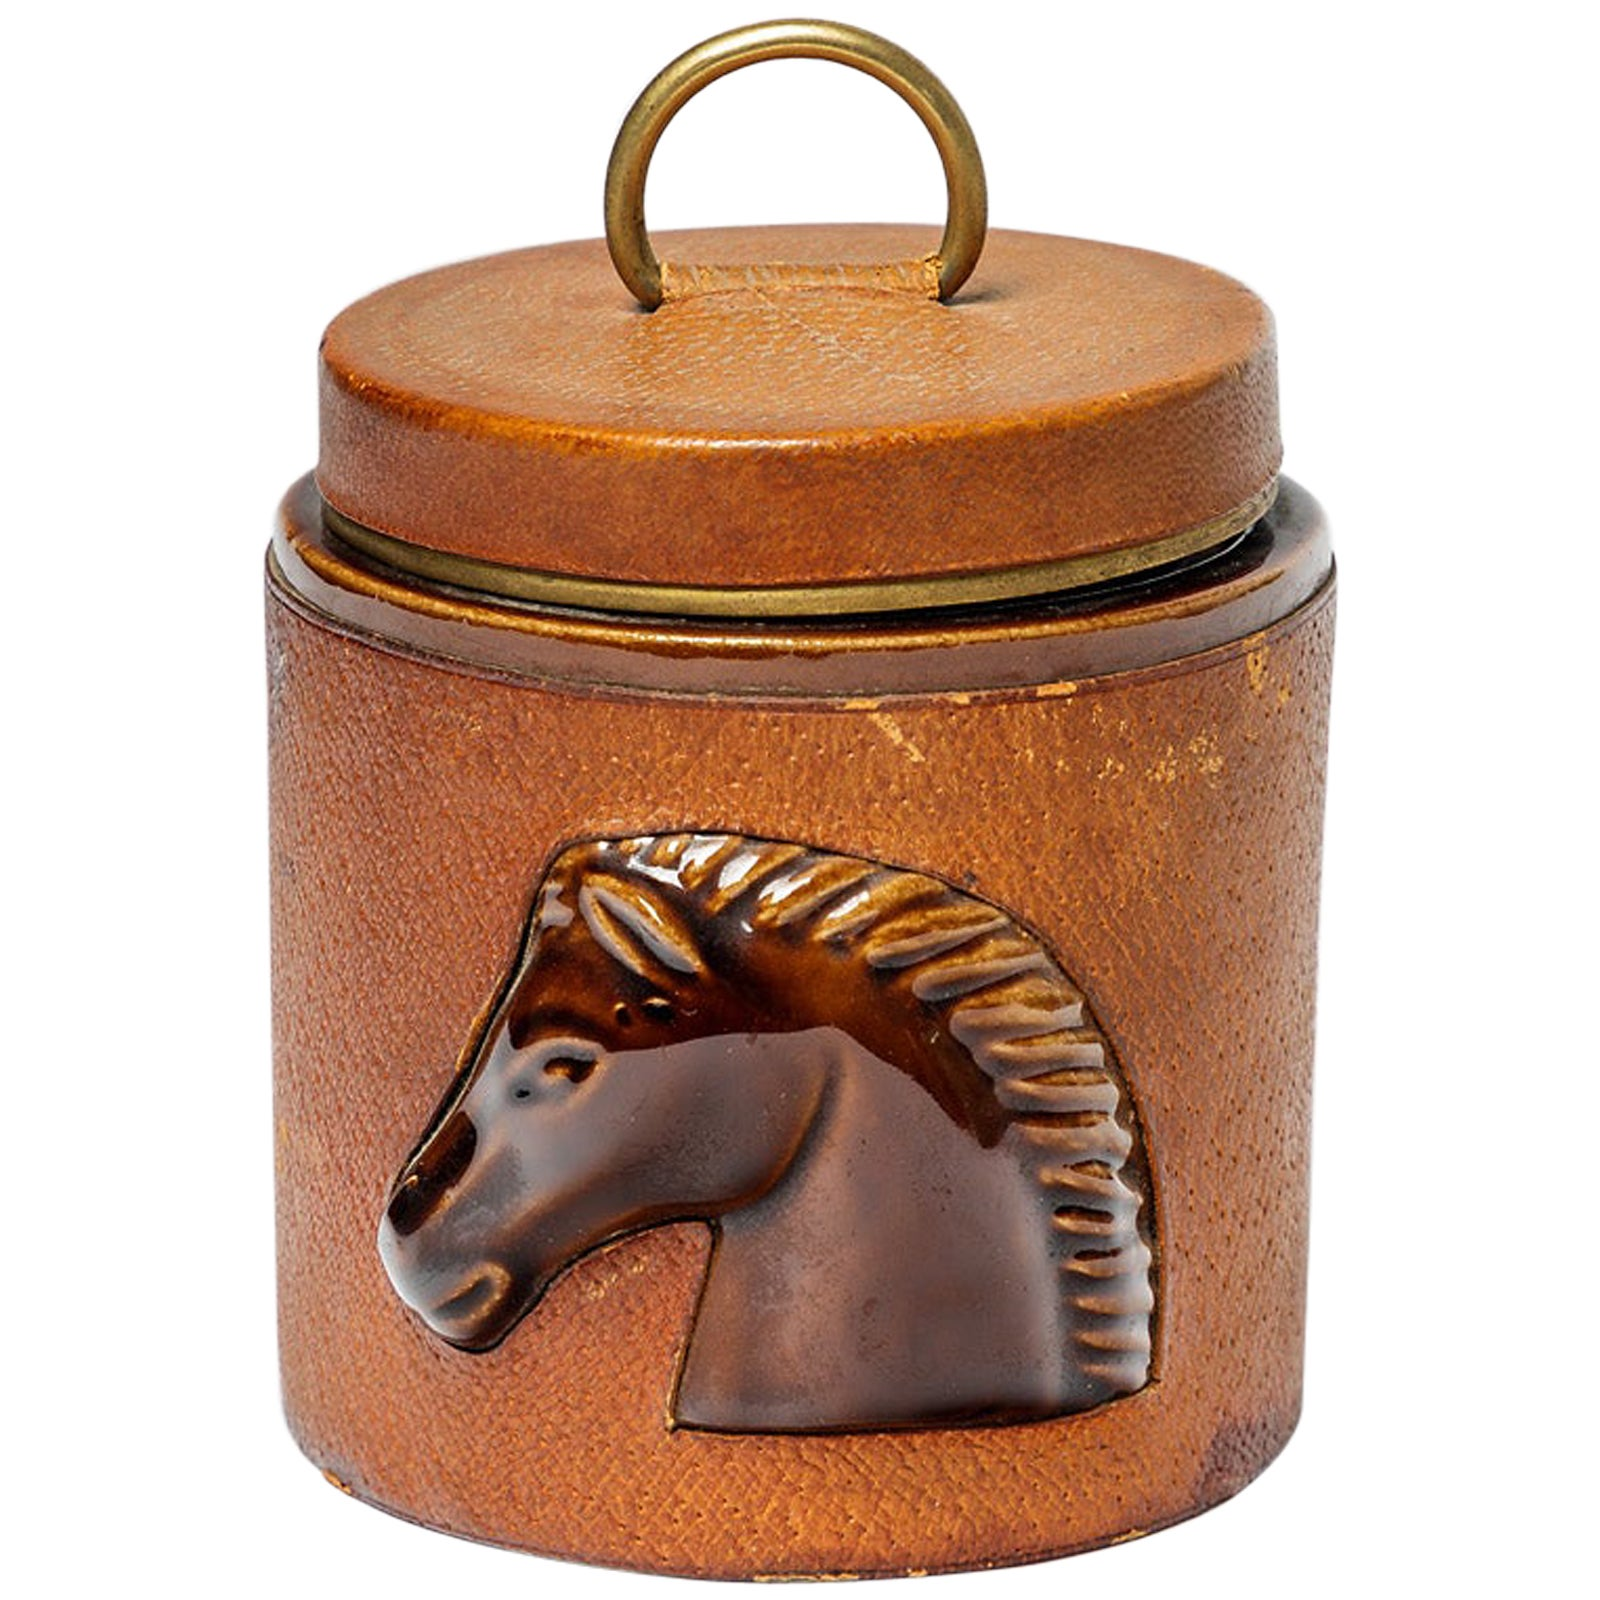 Decorative Leather and Ceramic Cigarette Box by Longchamp French Luxury